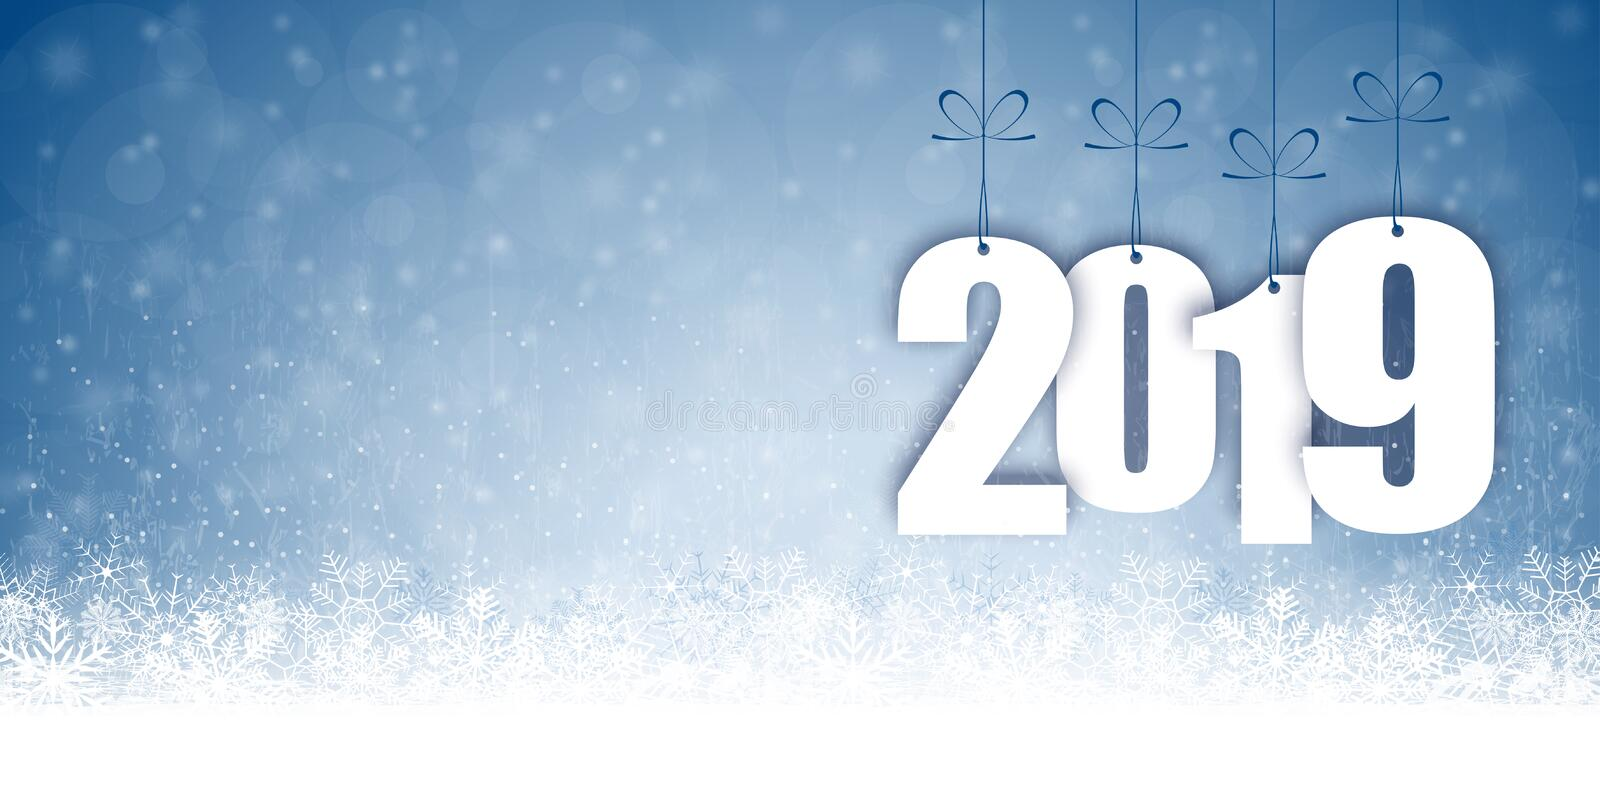 Snow fall background for christmas and New Year 2019. Background with snow fall and greetings for christmas and New Year 2019 stock illustration